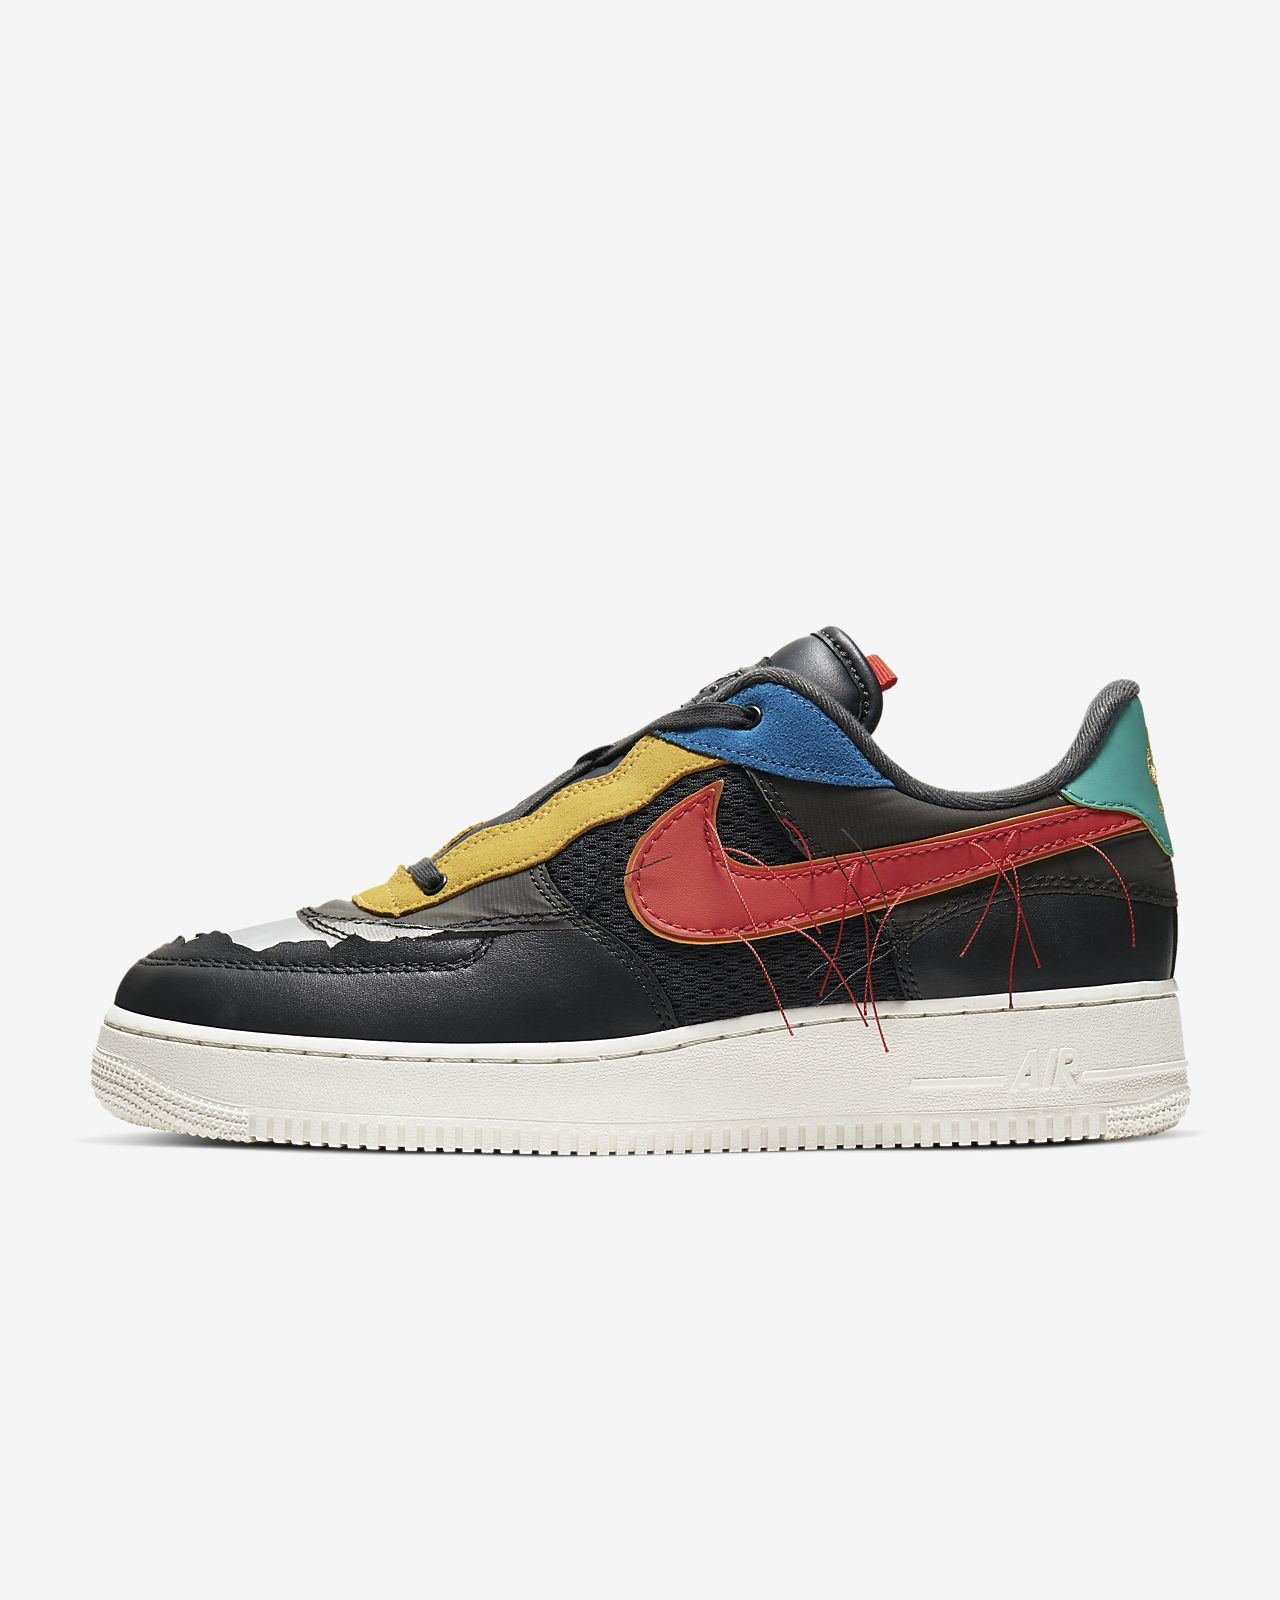 Nike Air Force 1 Low Black History Month Men's Shoe